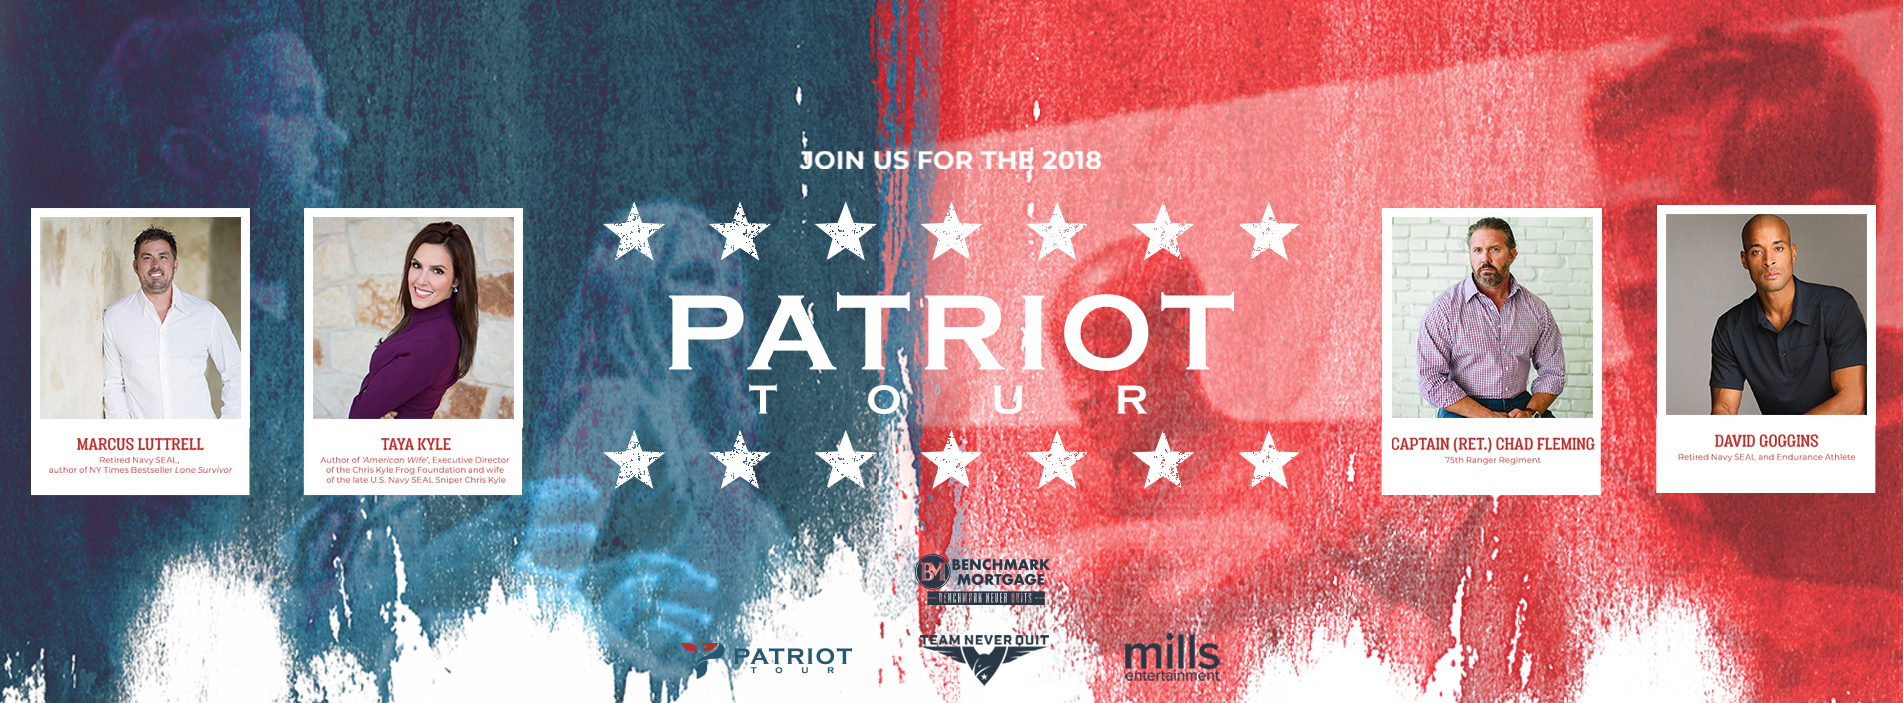 The Patriot Tour featuring Marcus Luttrell